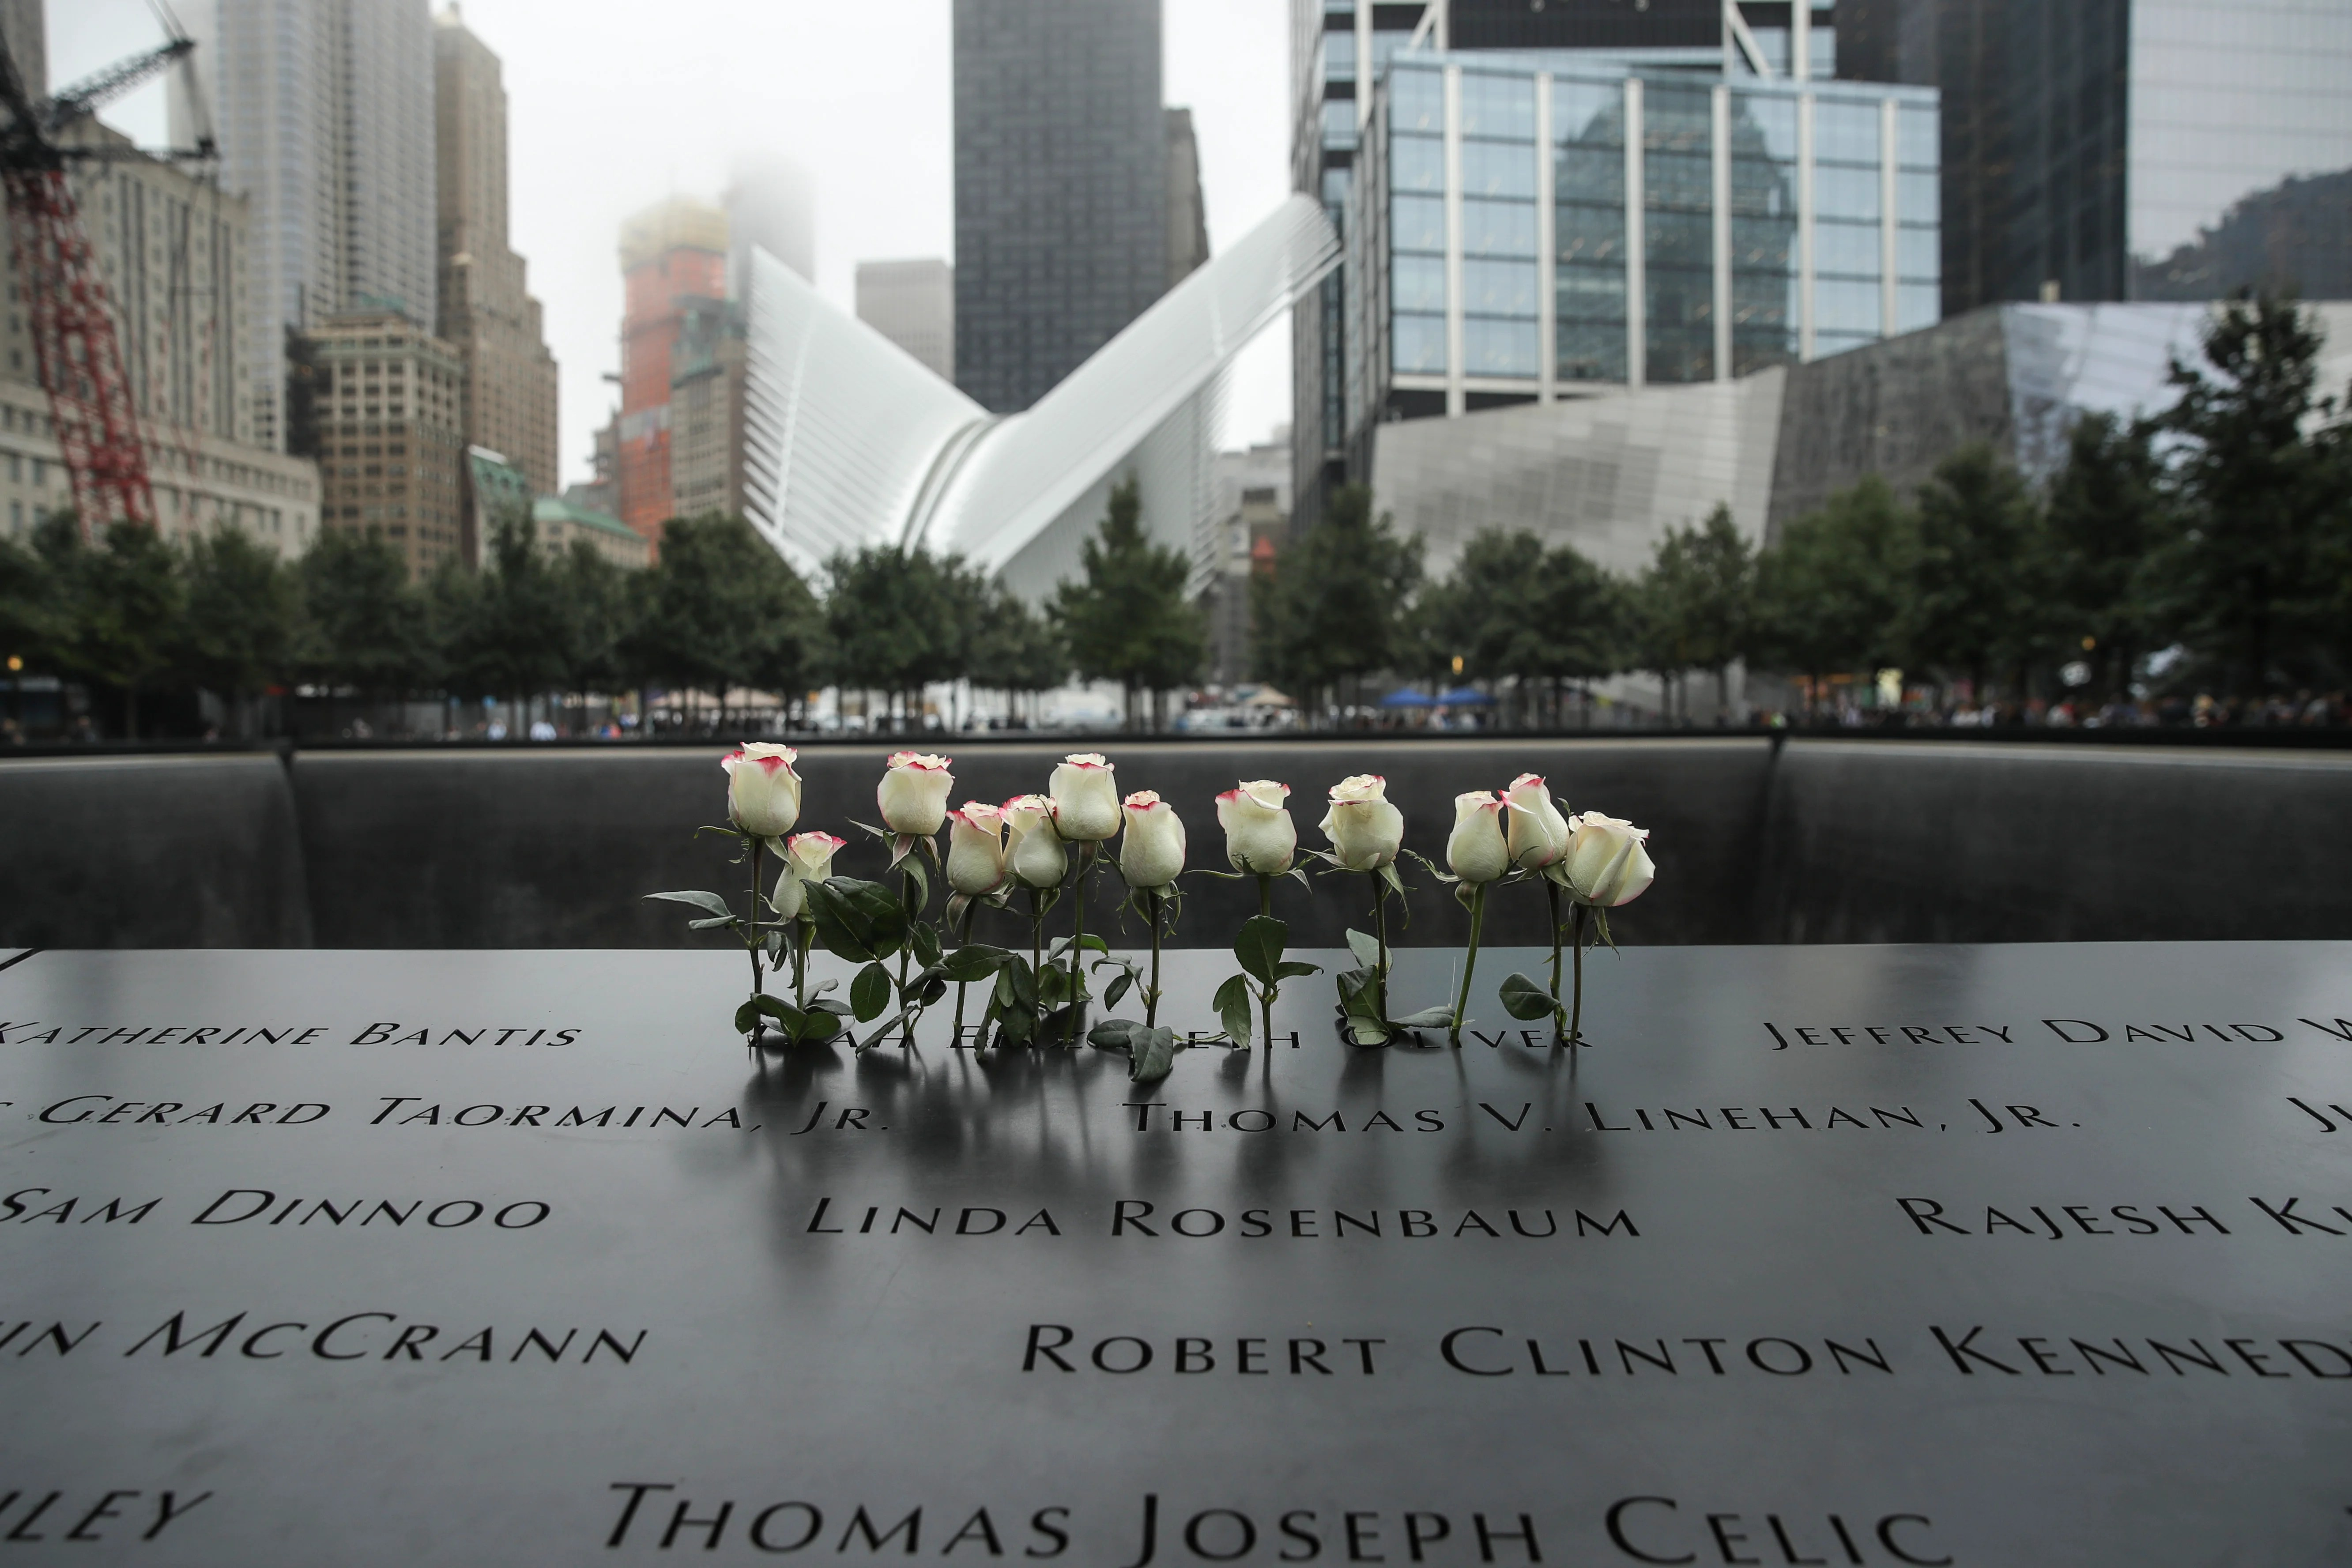 how many total hijackers took part in the 9/11 attacks?